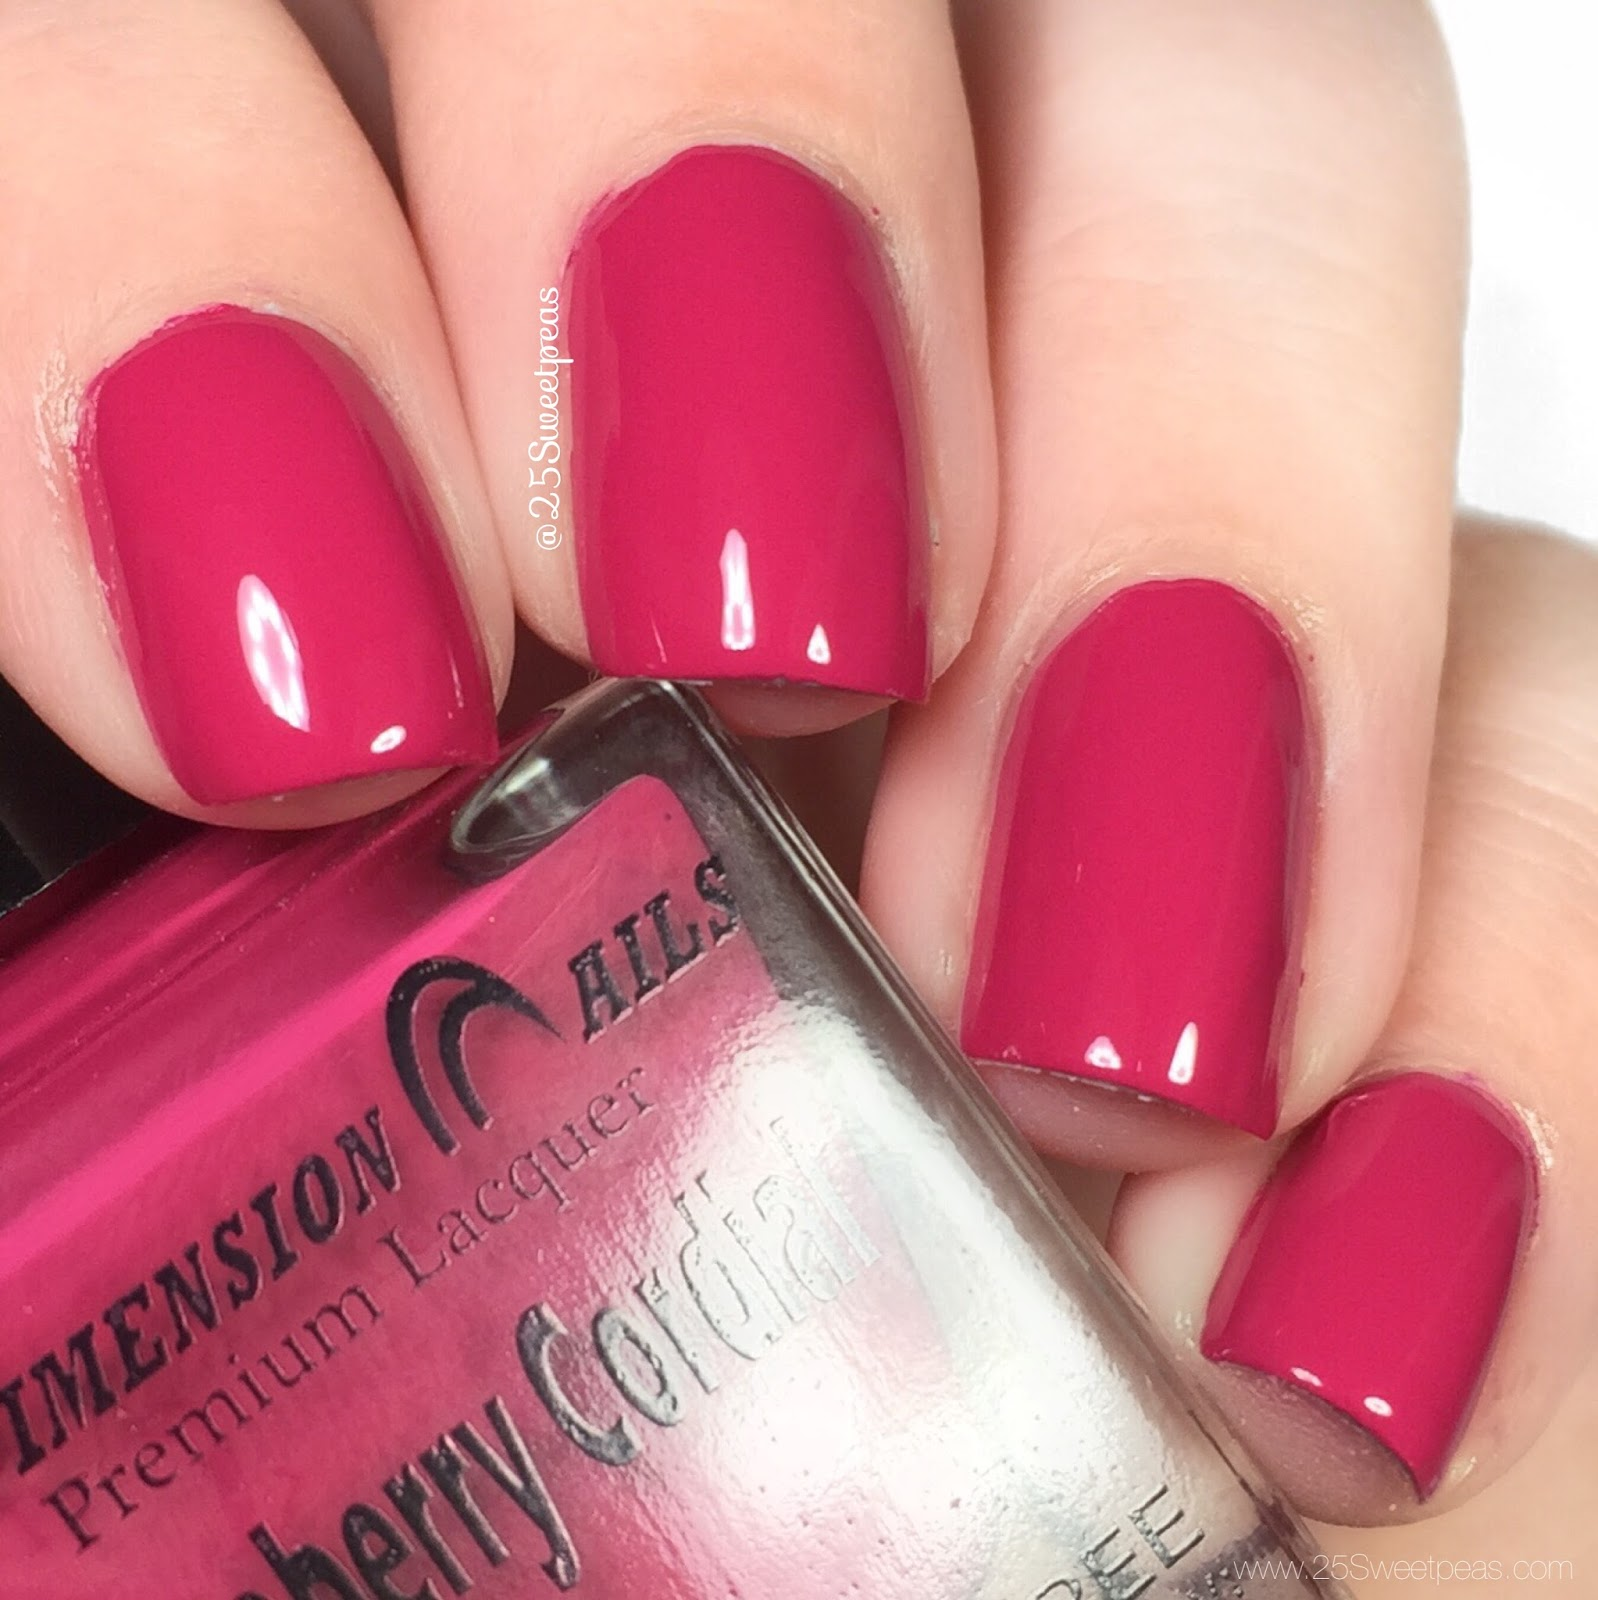 Dimension Nails Raspberry Cordial